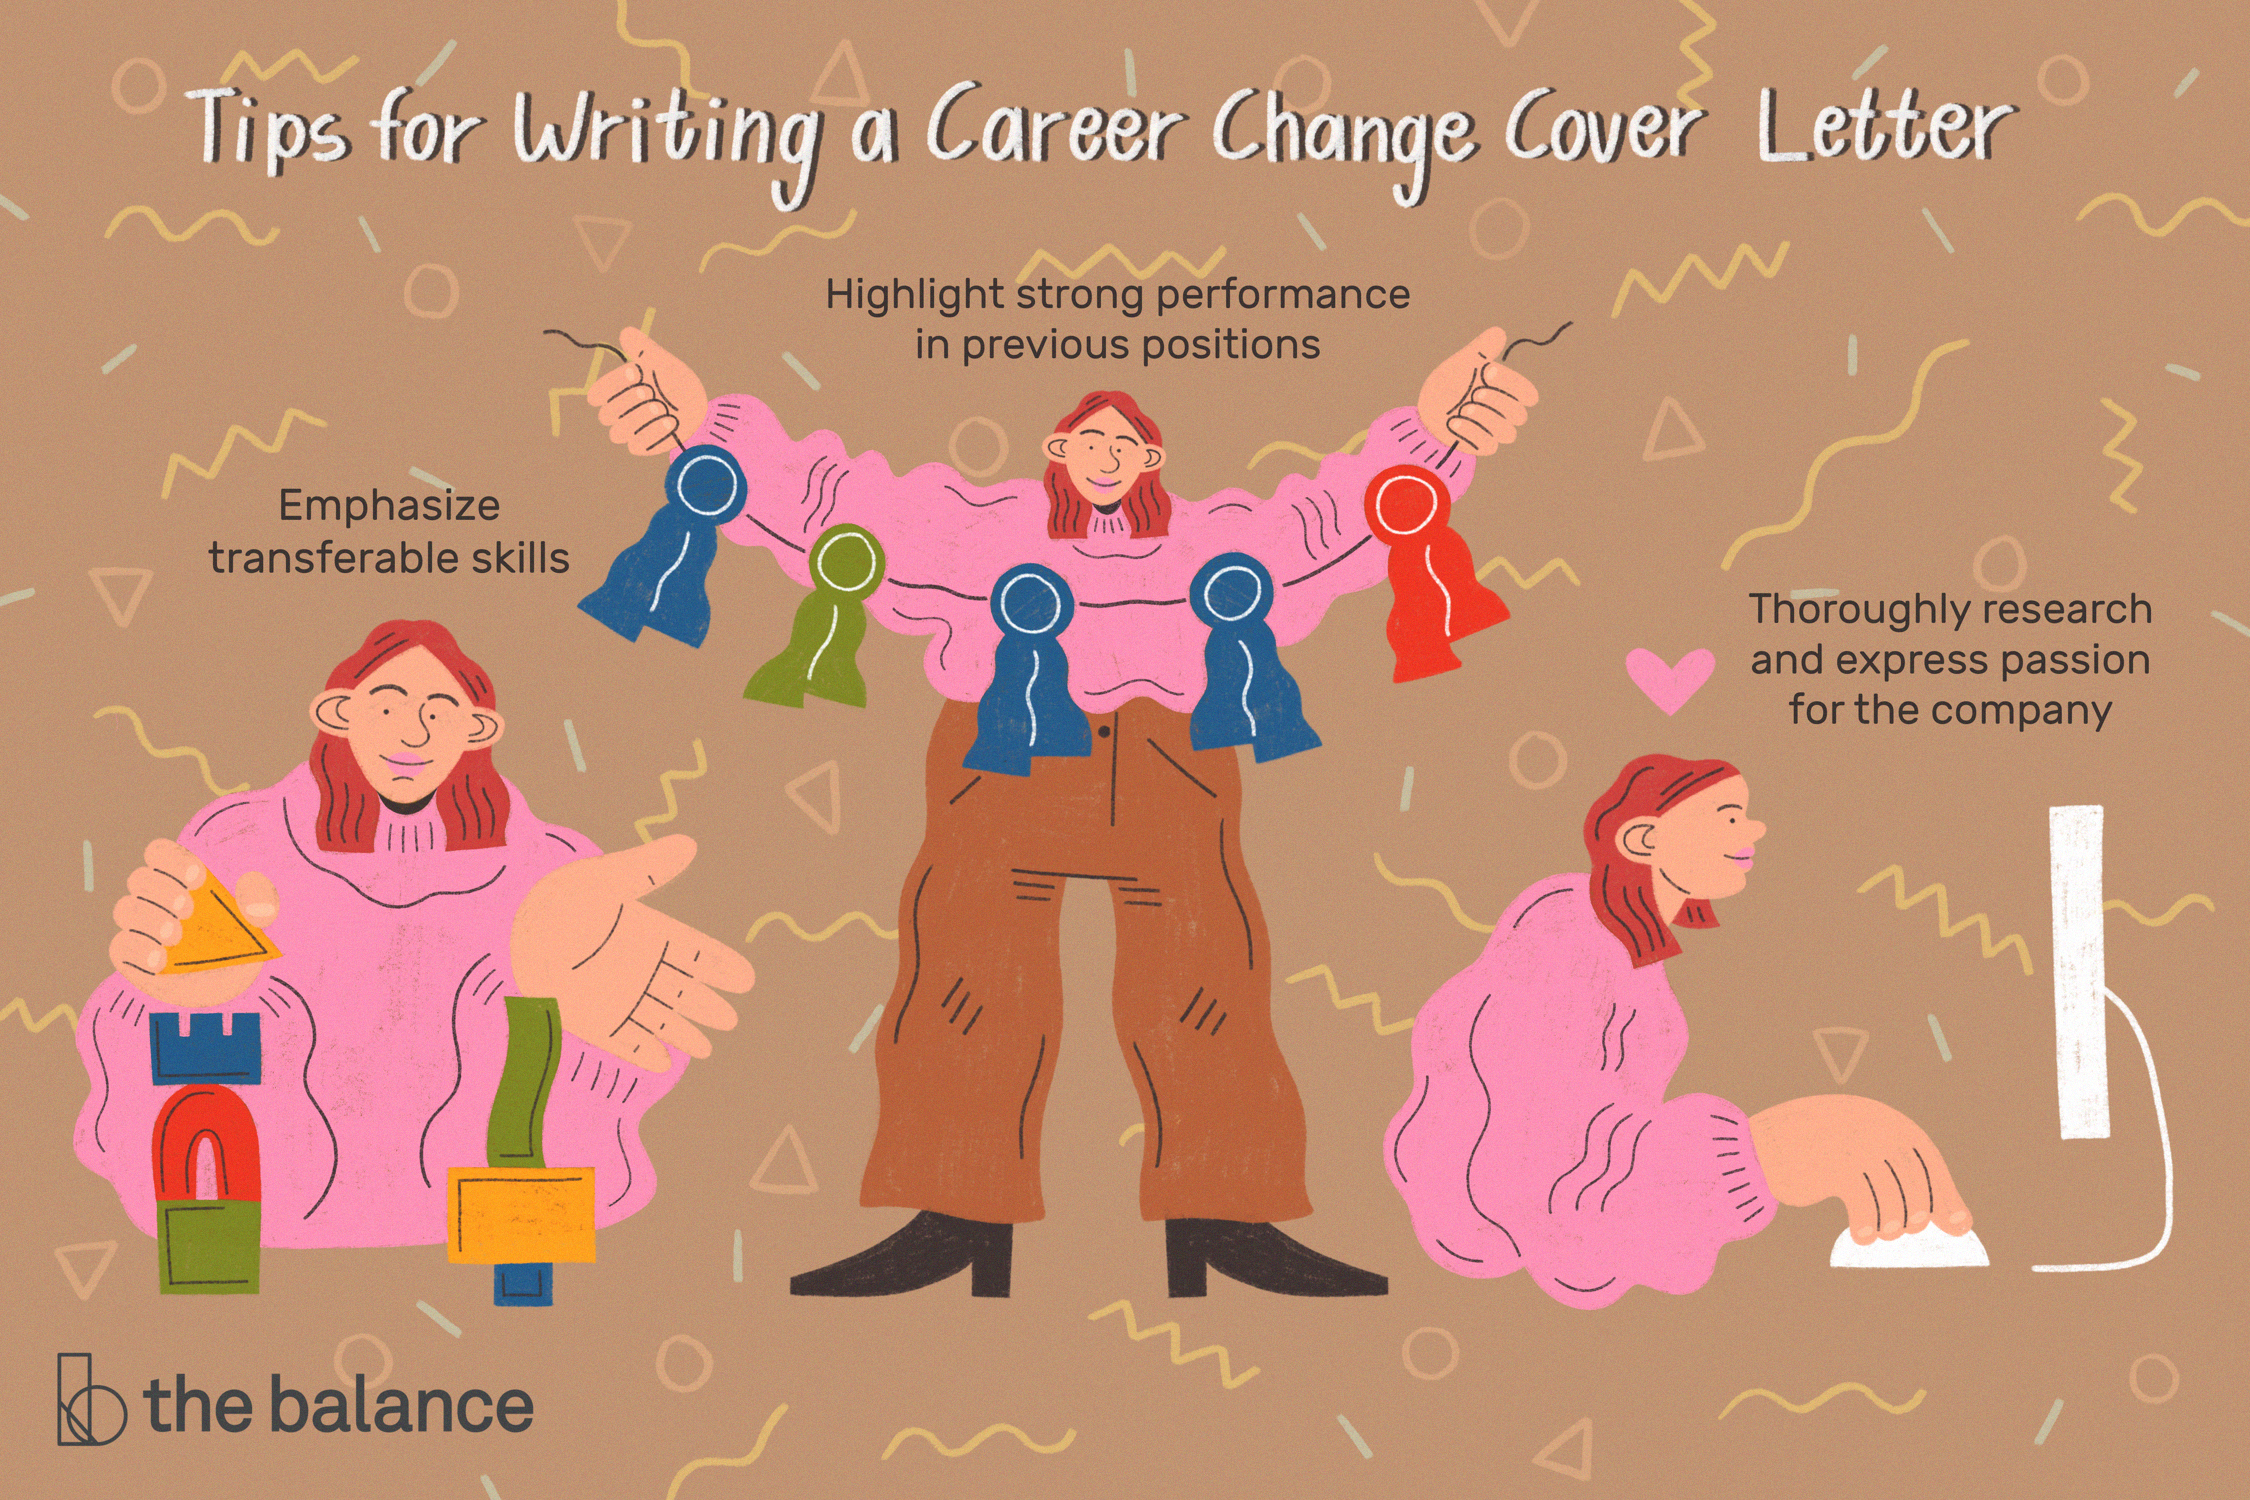 Sample Career Change Cover Letter And Writing Tips